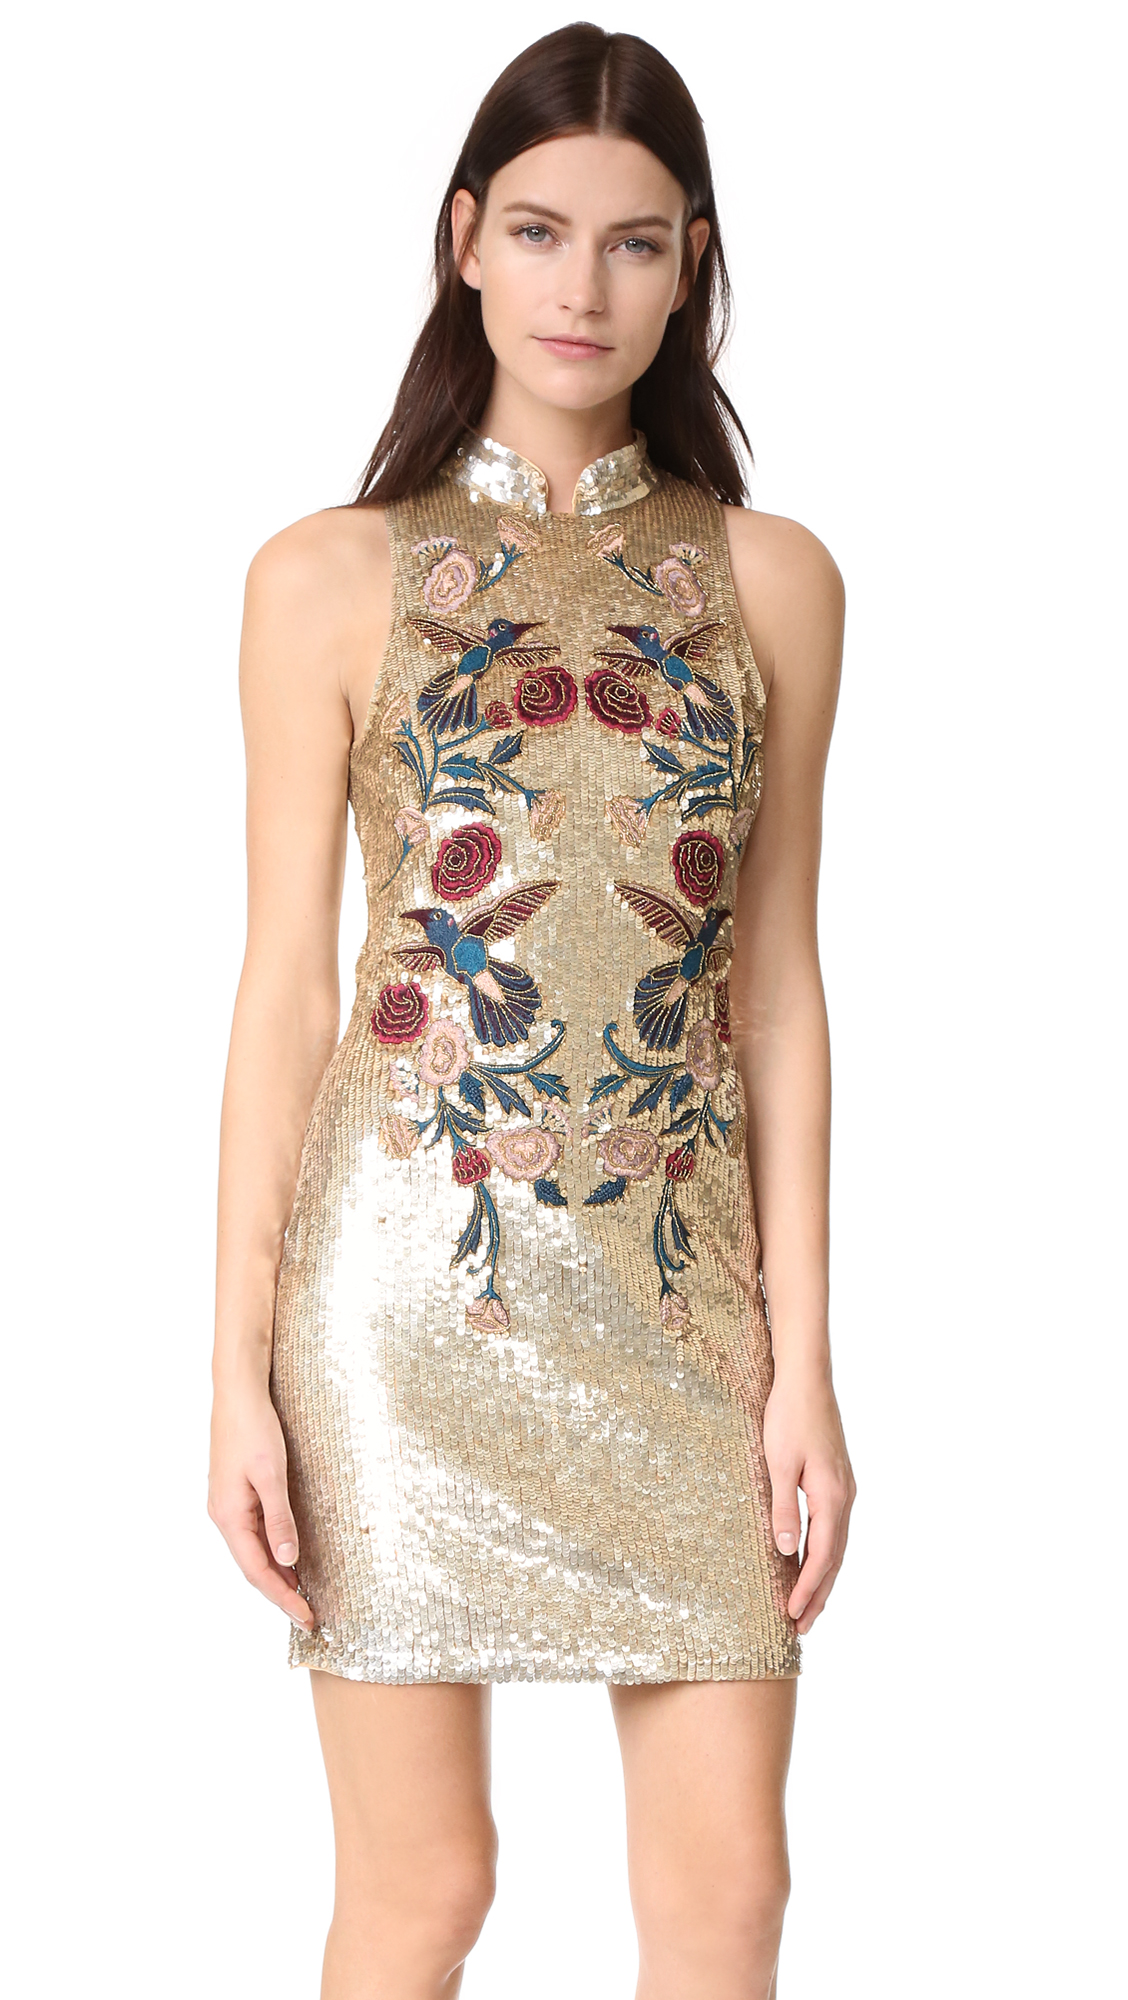 Mirrored sequins and jewel tone embroidery bring glamorous style to this Parker mini dress. Flirty back cutout and mandarin collar. Button closures and exposed zip in back. Lined. Fabric: Beaded mesh. Shell: 100% nylon. Lining: 95% polyester/5% lycra